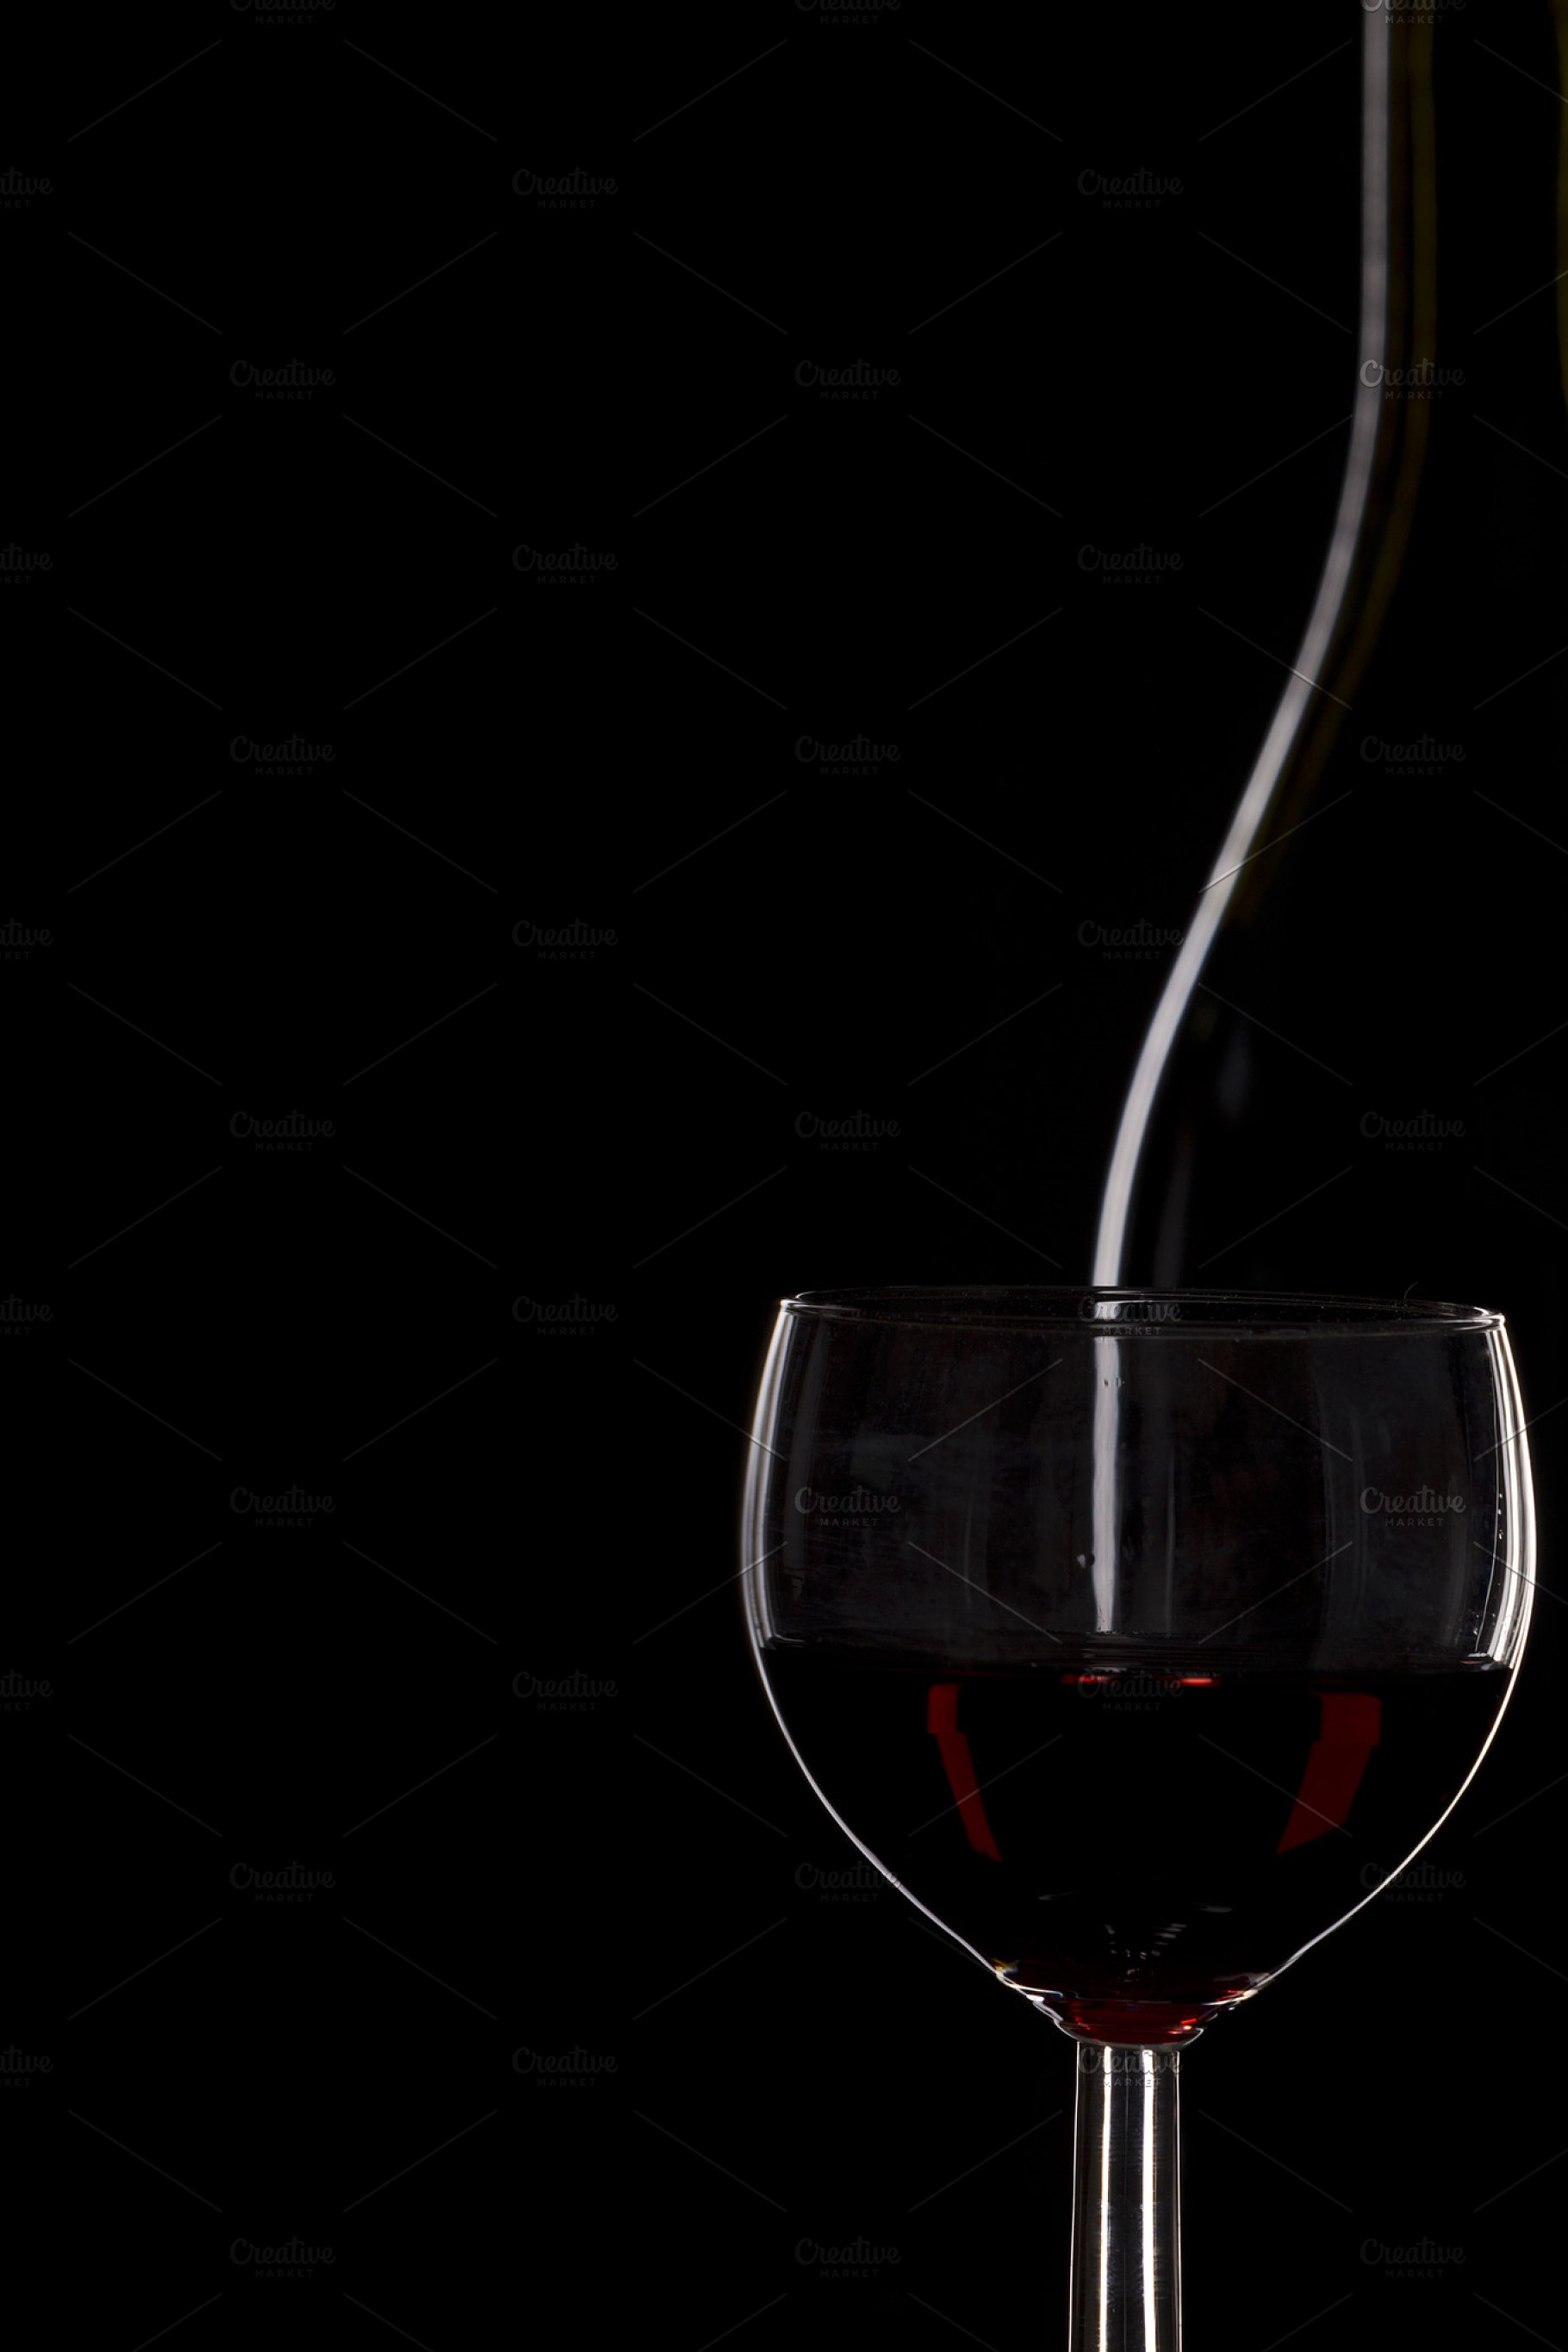 5d1ad3bd05e4 Bottle of wine and a glass of wine on a black background